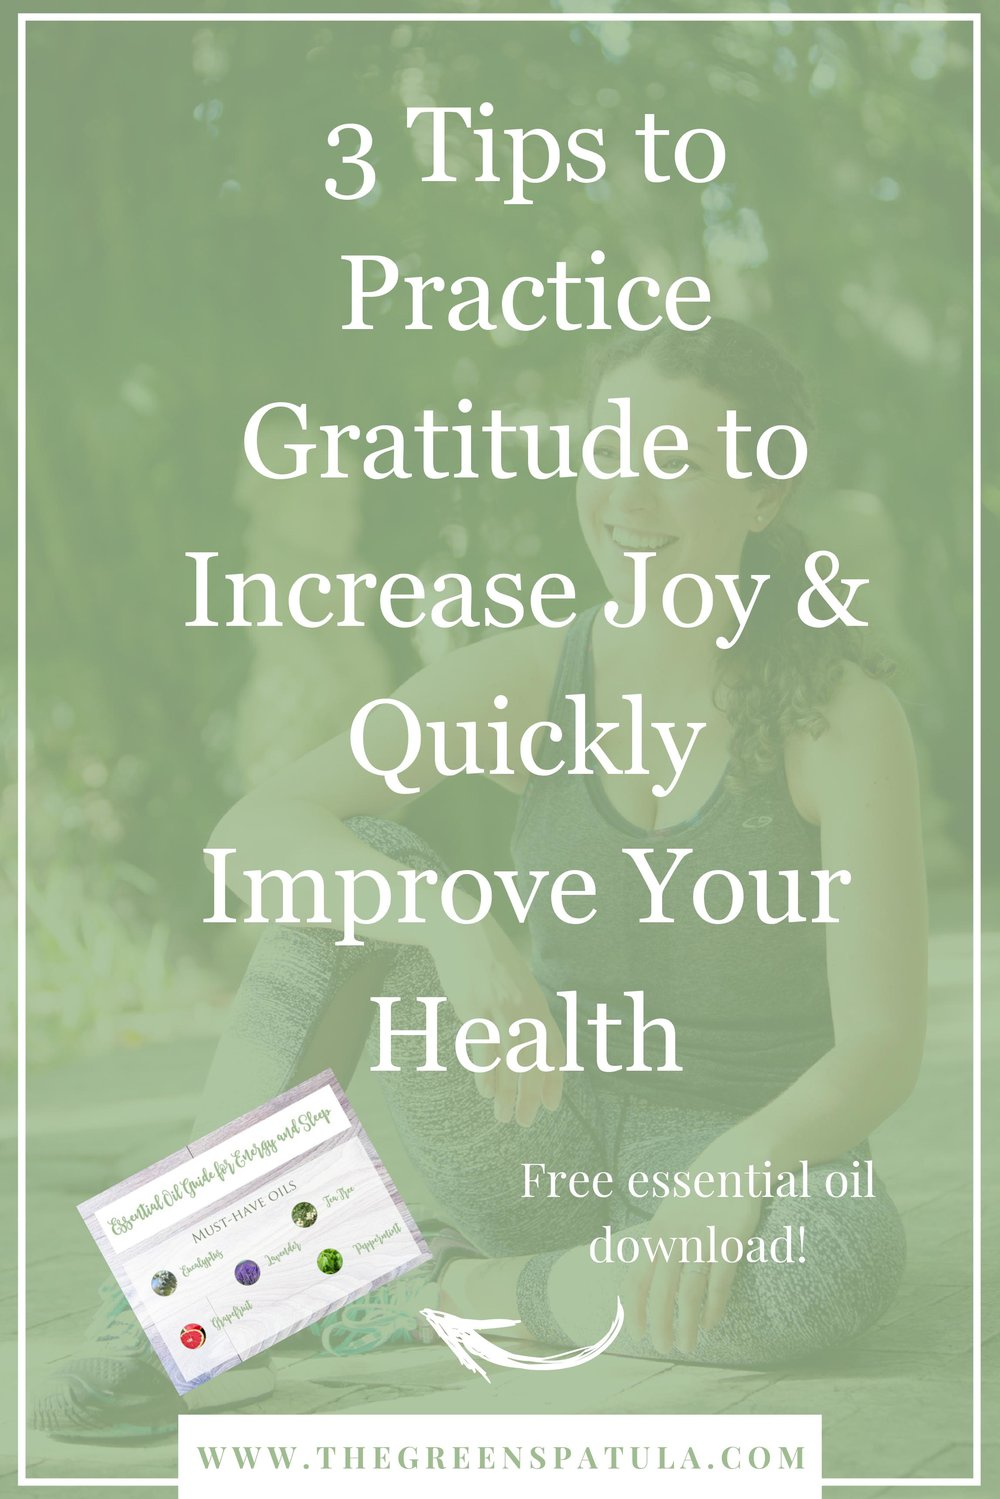 3 tips to practice gratitude to increase joy and quickly improve your health. A daily gratitude practice is one of the simplest, quickest, and significant ways to improving your health and happiness. Multiple studies have shown that people who are grateful for what they have are less stressed (which influences our hormones, metabolism, energy, and mood), sleep deeper, and create better relationships. Free essential oil download! #vegan #abundance #positivemindset #freedownload #plantbased #gratitude